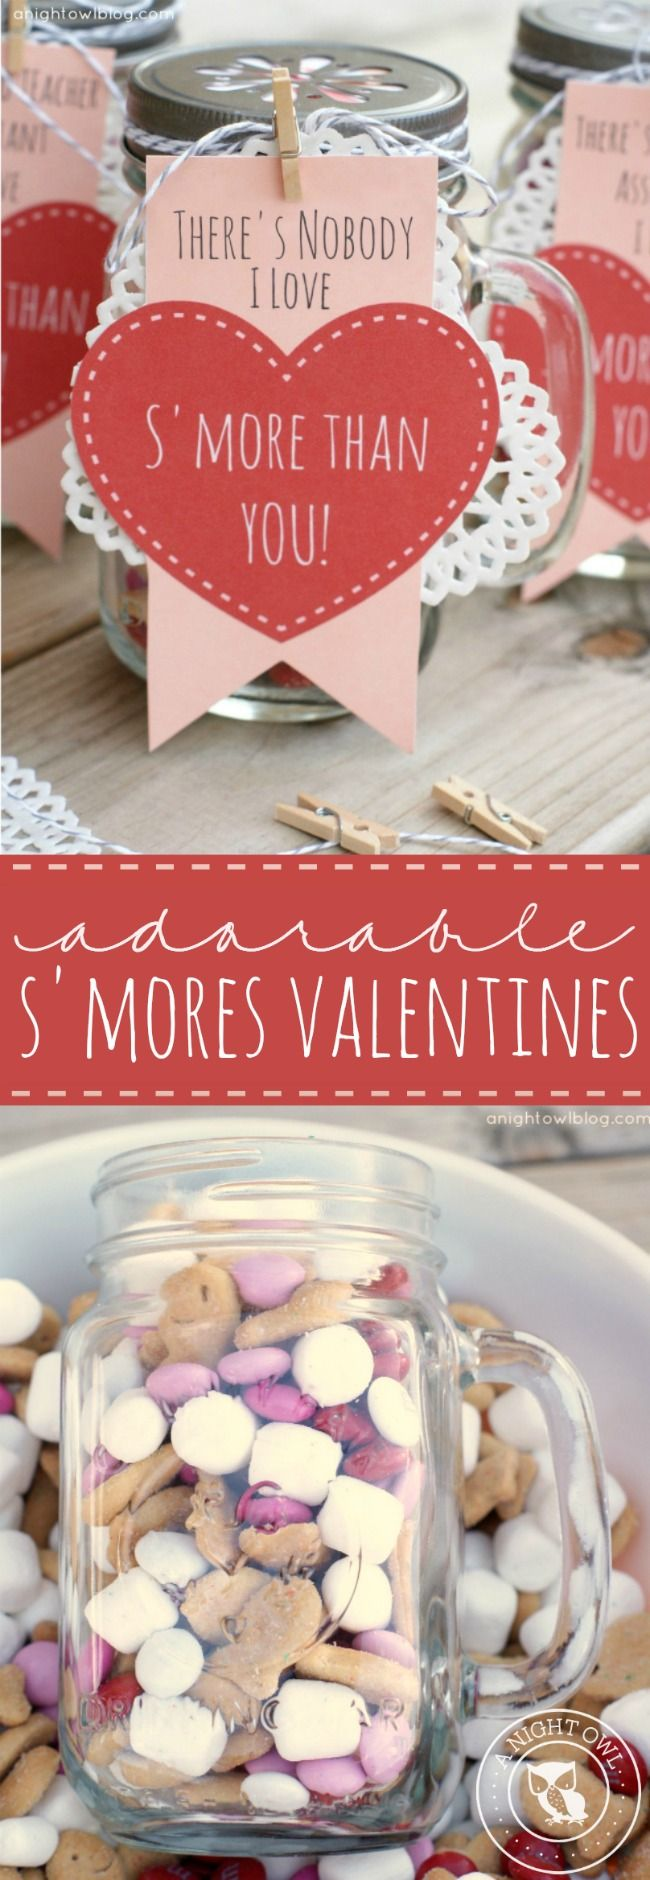 Quick and easy valentine crafts - Adorable S Mores Valentines Mason Jars Filled With S Mores Snack Mix And